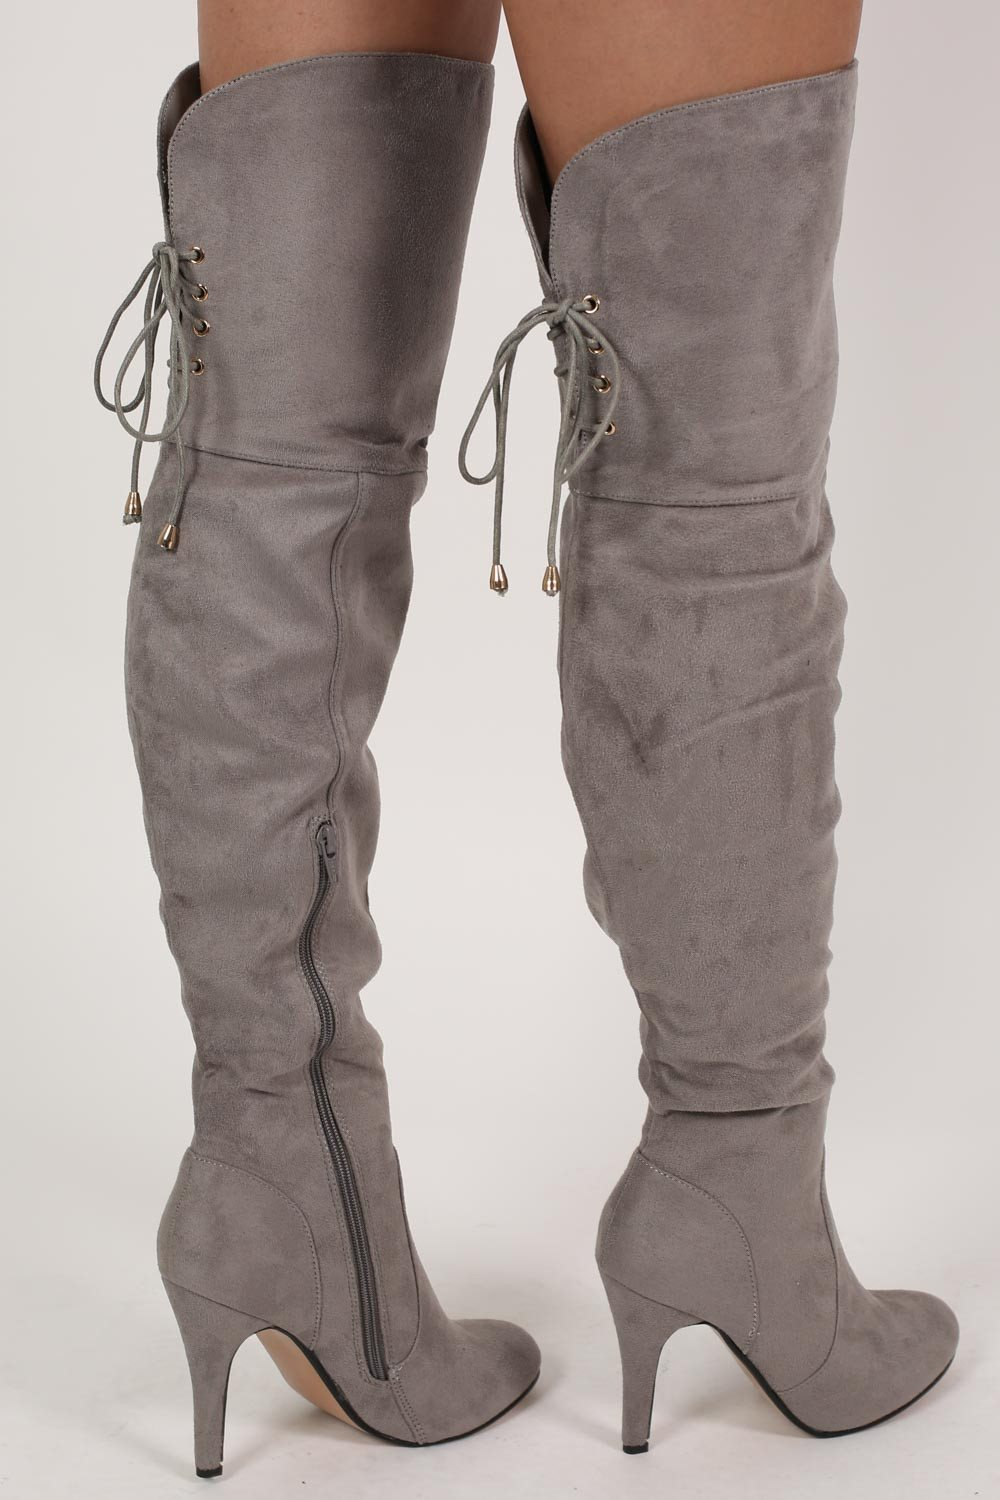 de9a3803aa8b Faux Suede Over The Knee Stiletto High Heel Boots in Grey MODEL BACK